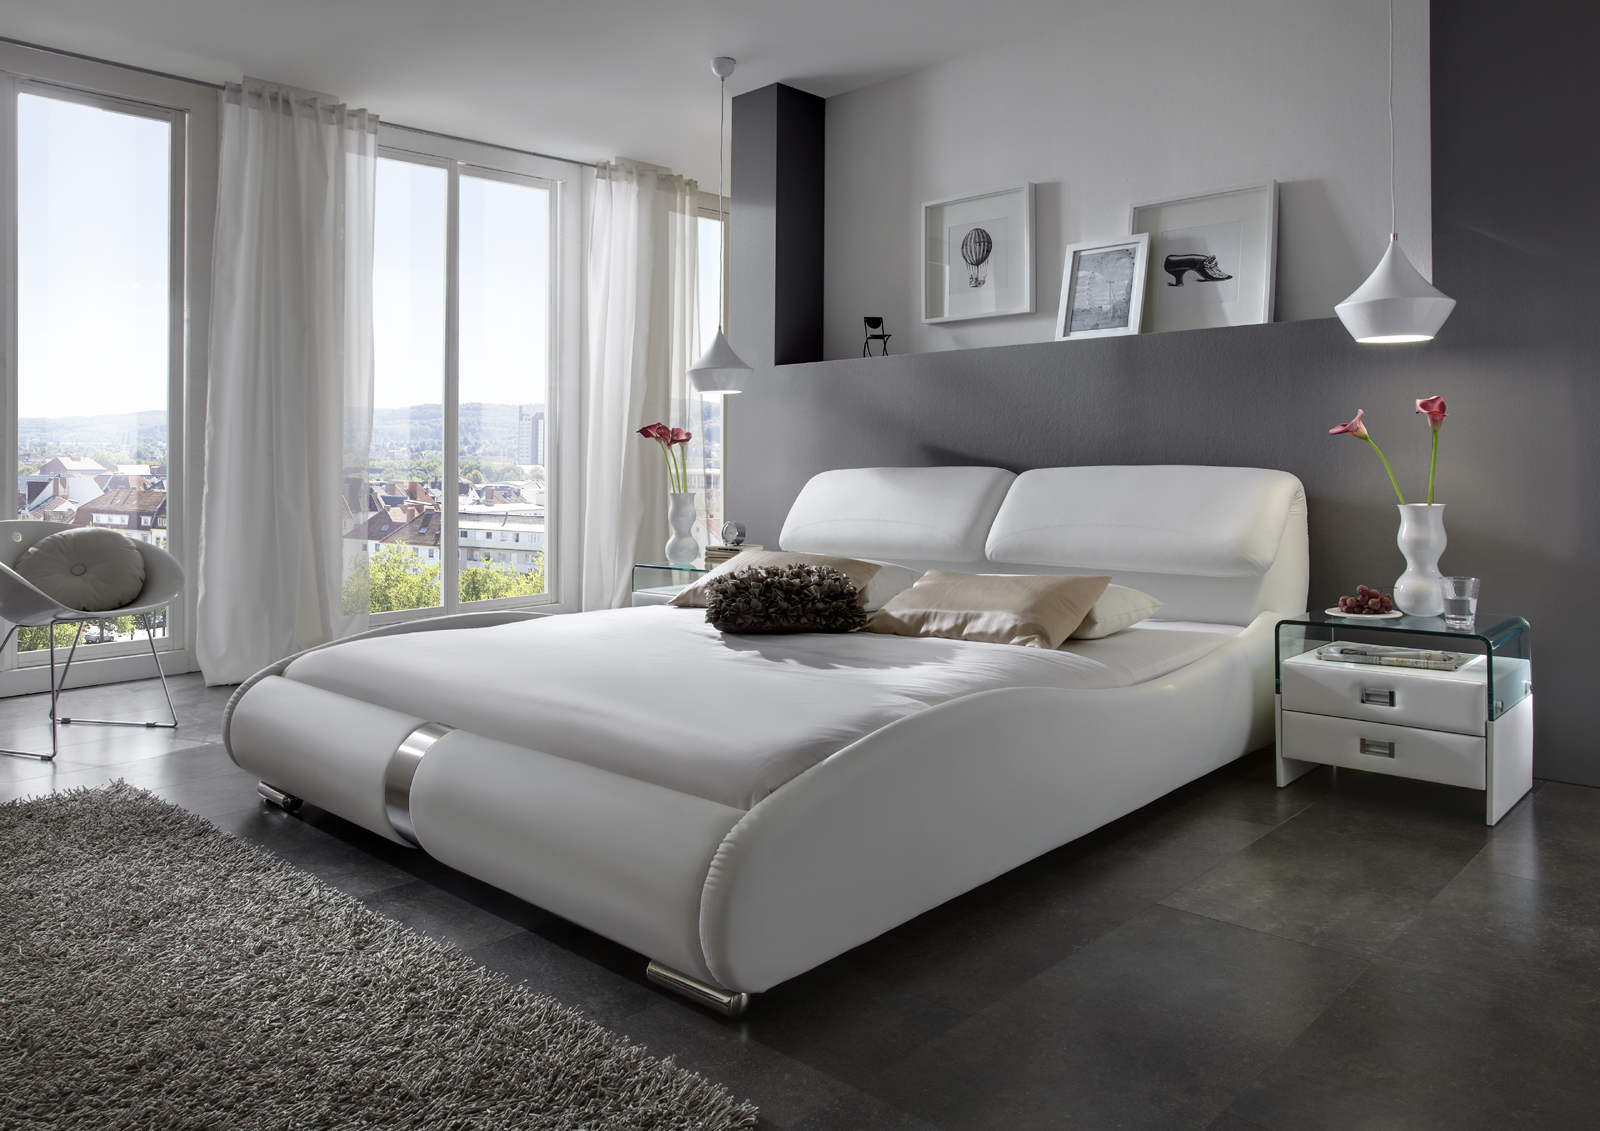 sam polsterbett 160 cm lucca farbauswahl g nstig. Black Bedroom Furniture Sets. Home Design Ideas